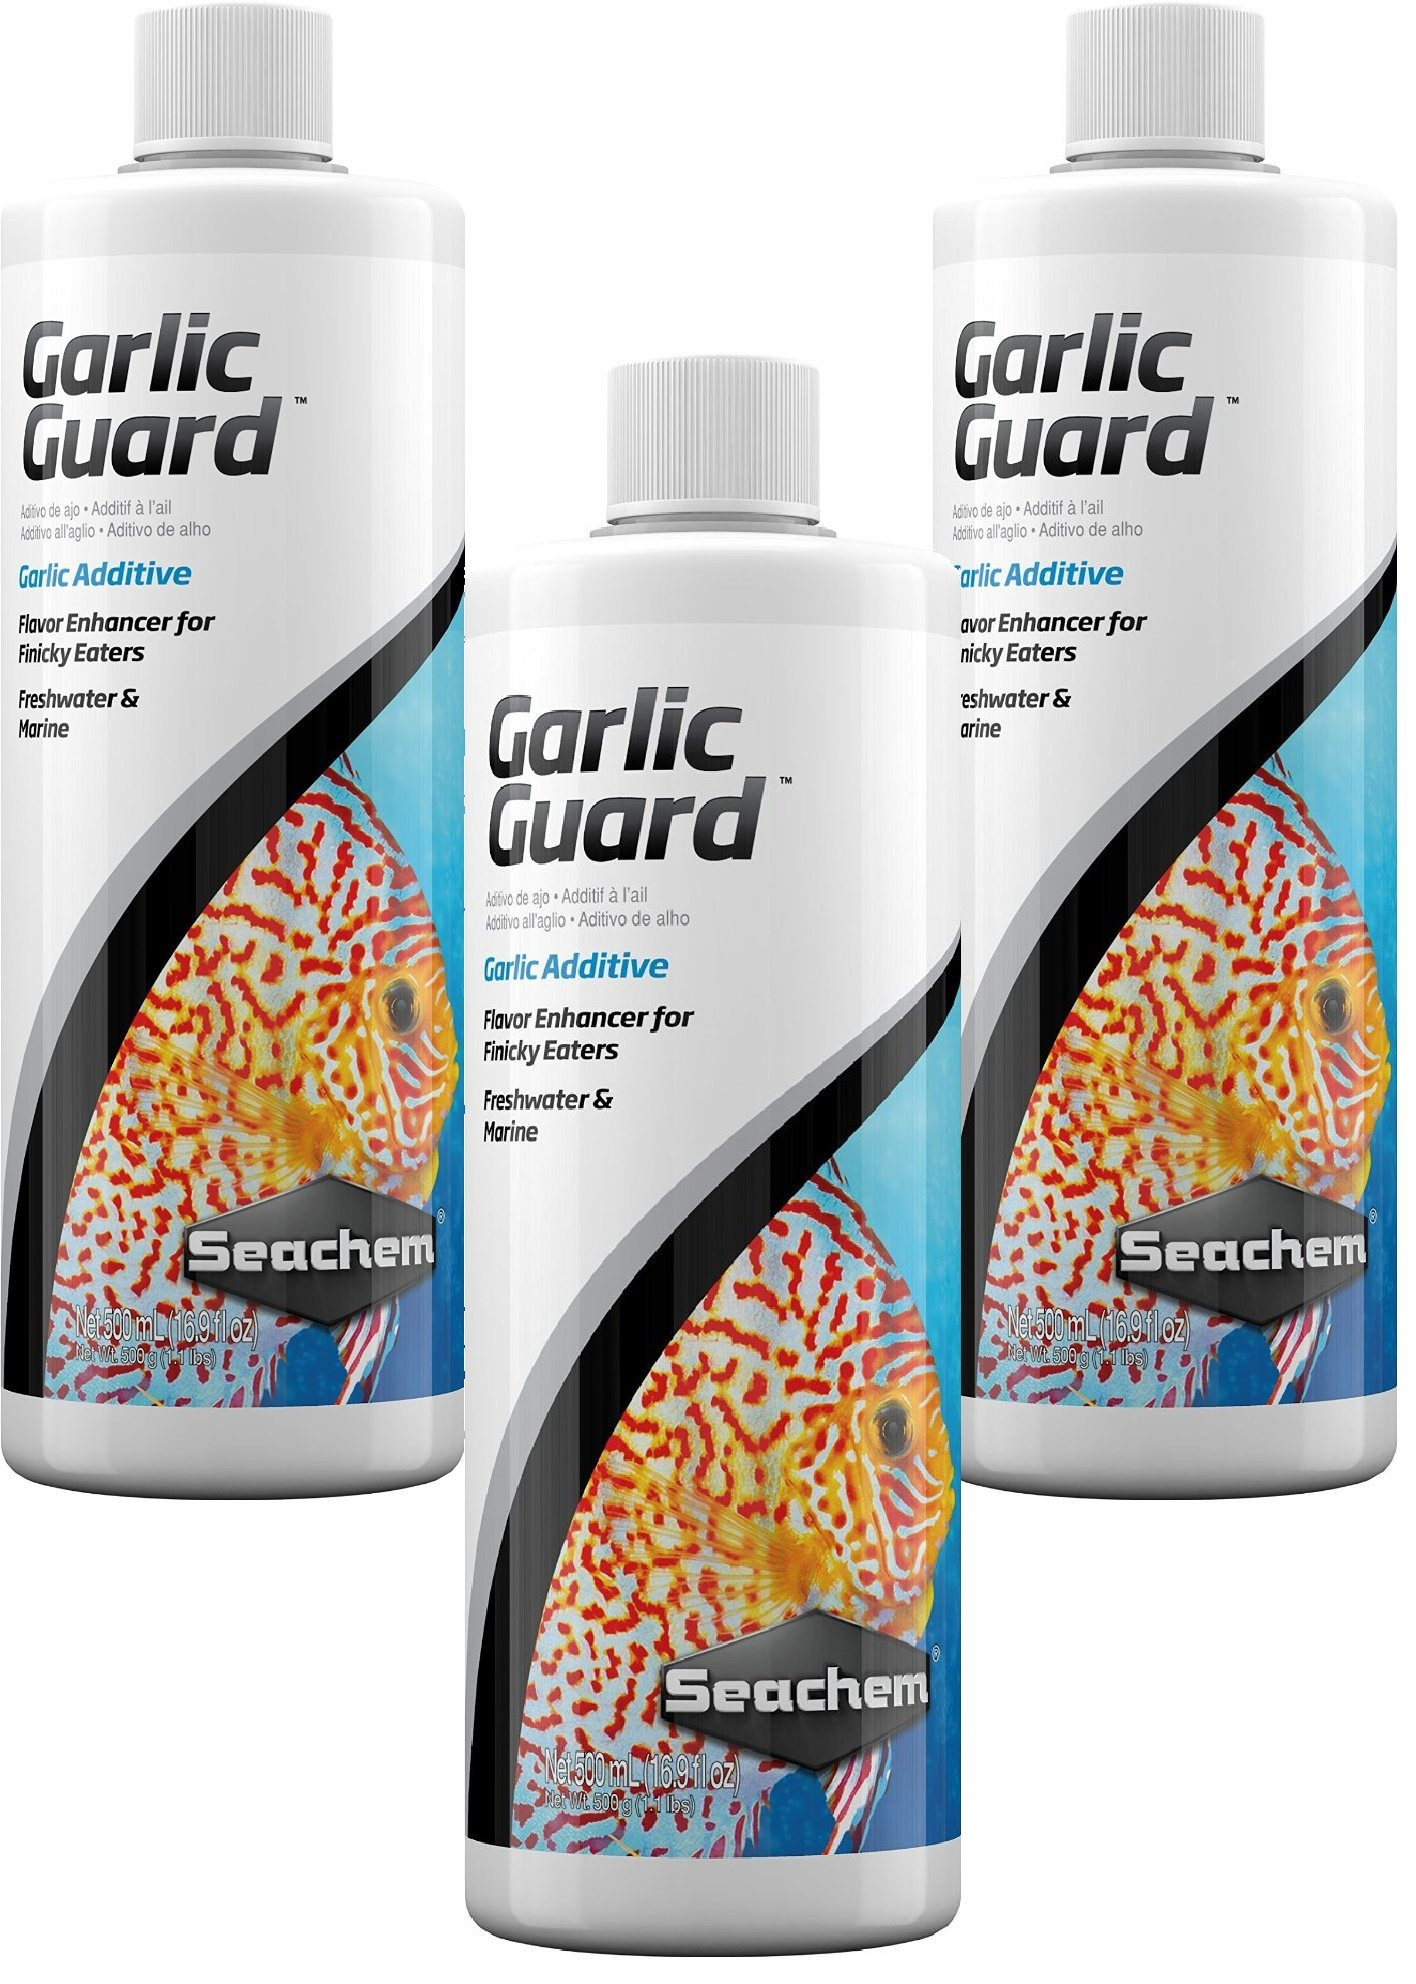 Seachem Garlic Guard Additive Flavor Enhancer for Finicky Eaters Freshwater and Marine, 17 ounce (3 Pack) by Seachem